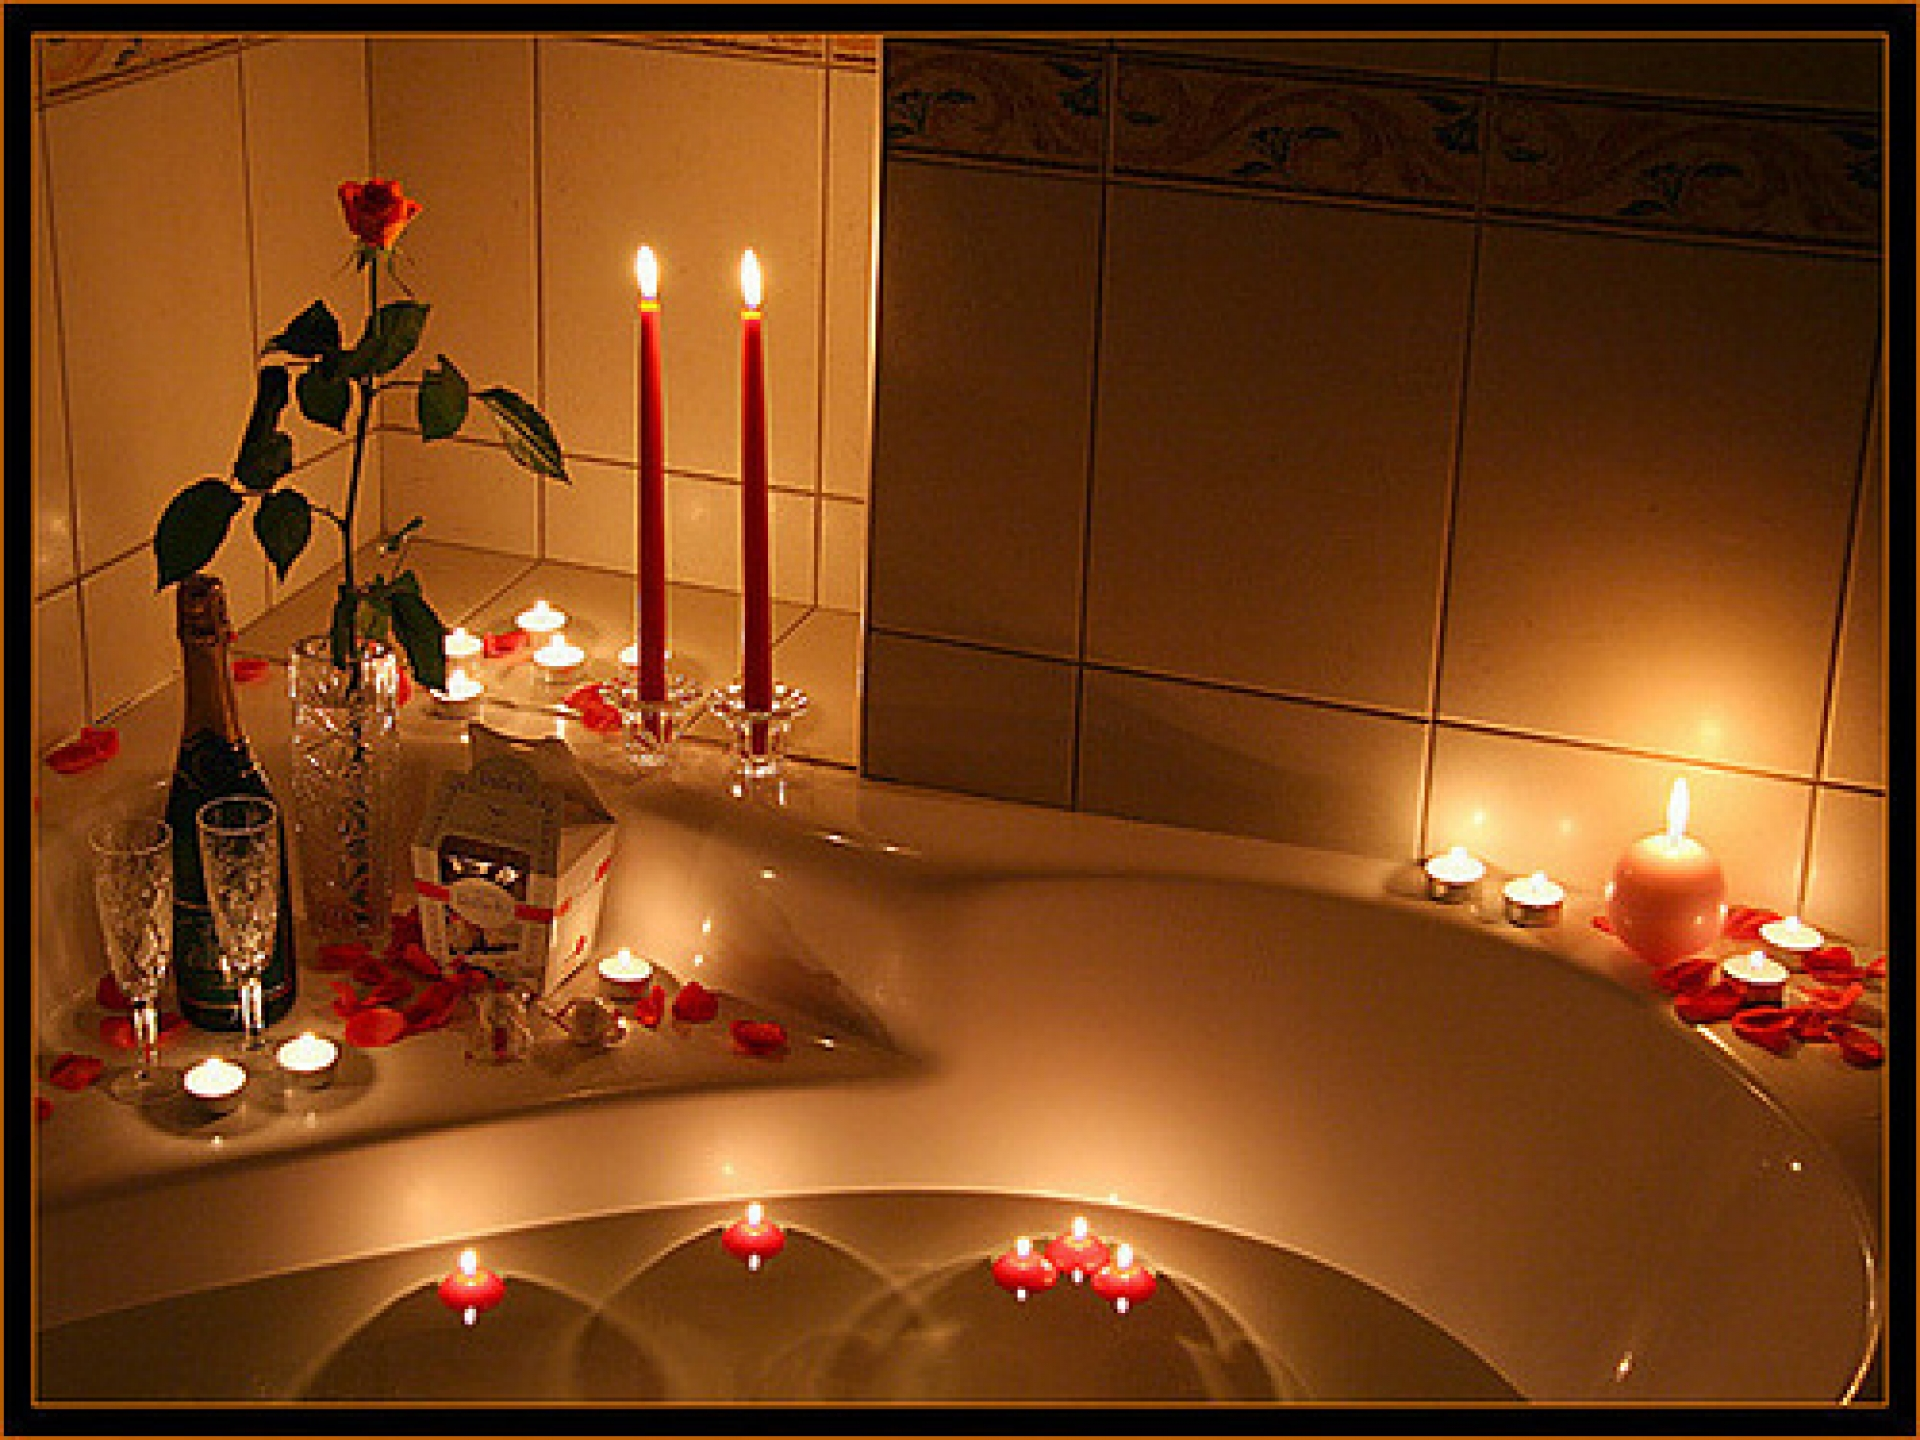 remarkable-romantic-bath-lighting-using-long-and-short-red-candles-added-with-small-floating-candles